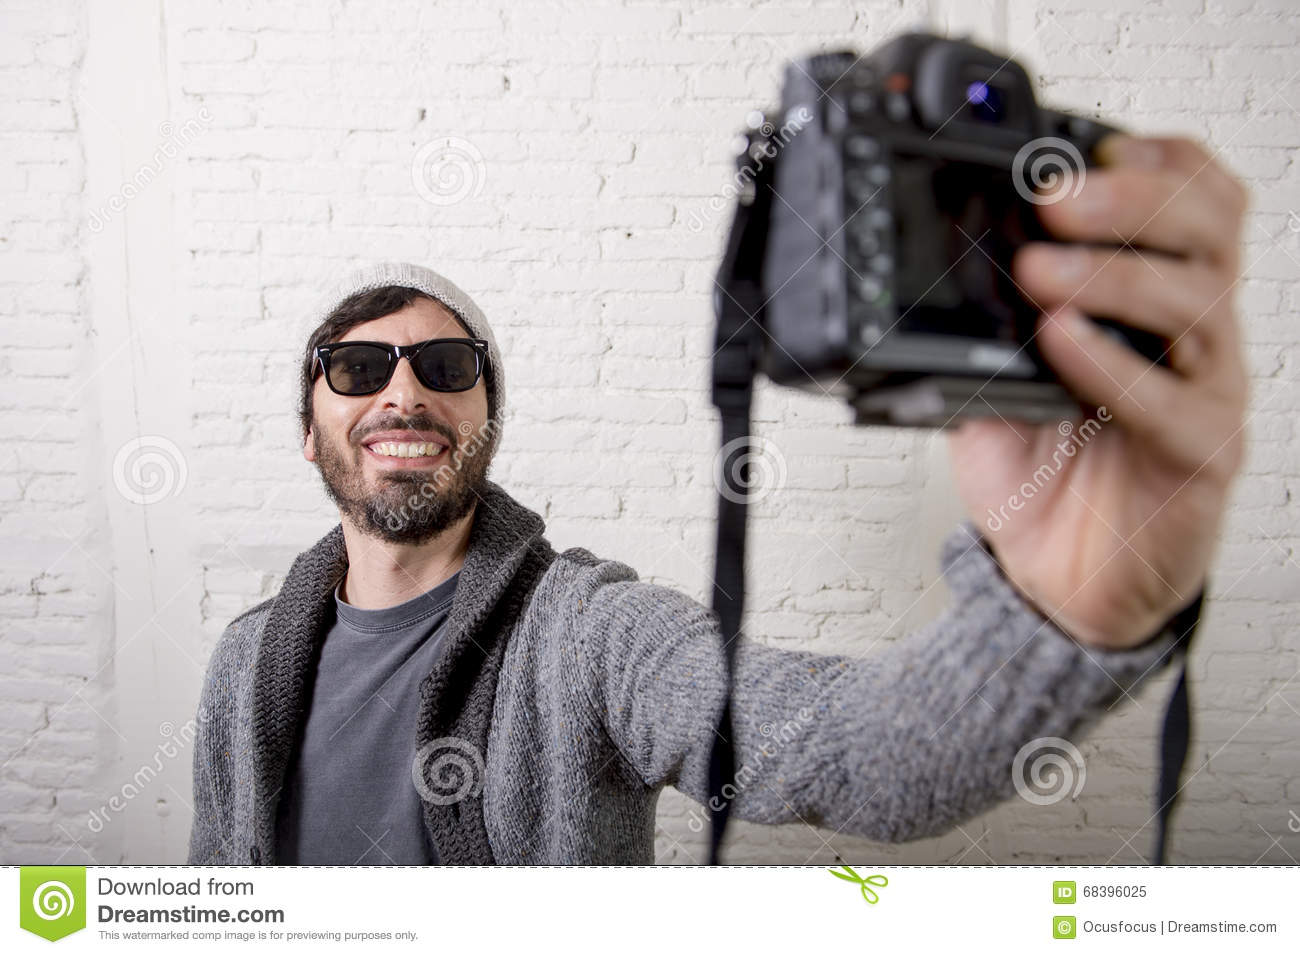 Young blogger man hipster style holding photo camera shooting selfie video and photo